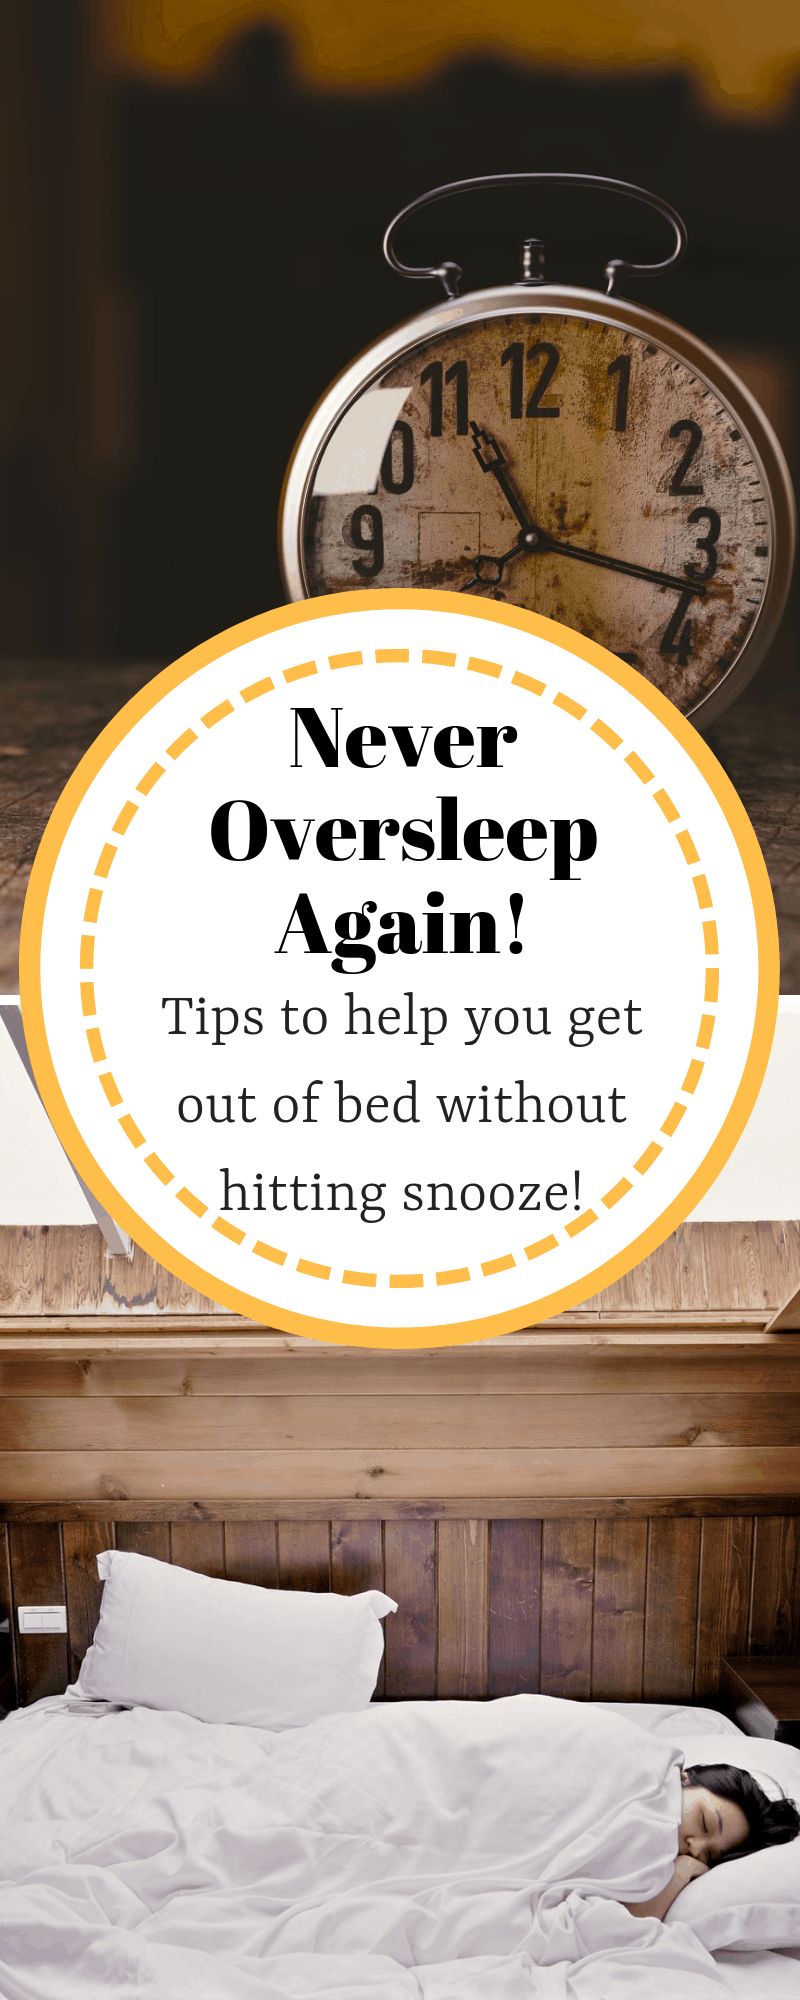 Tips to Getting Out of Bed Without Hitting Snooze